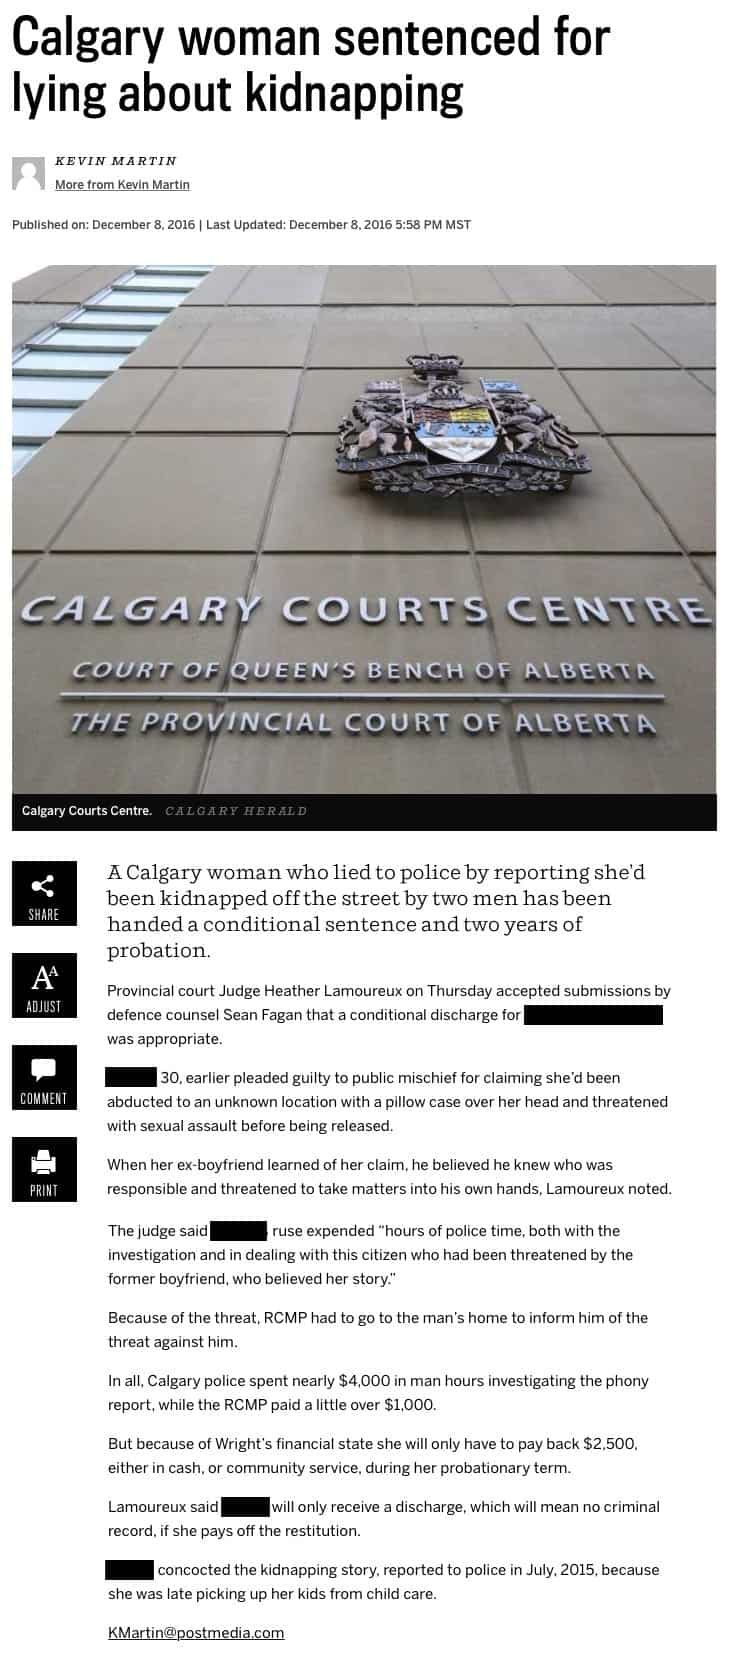 Calgary woman sentenced for lying about kidnapping article image.